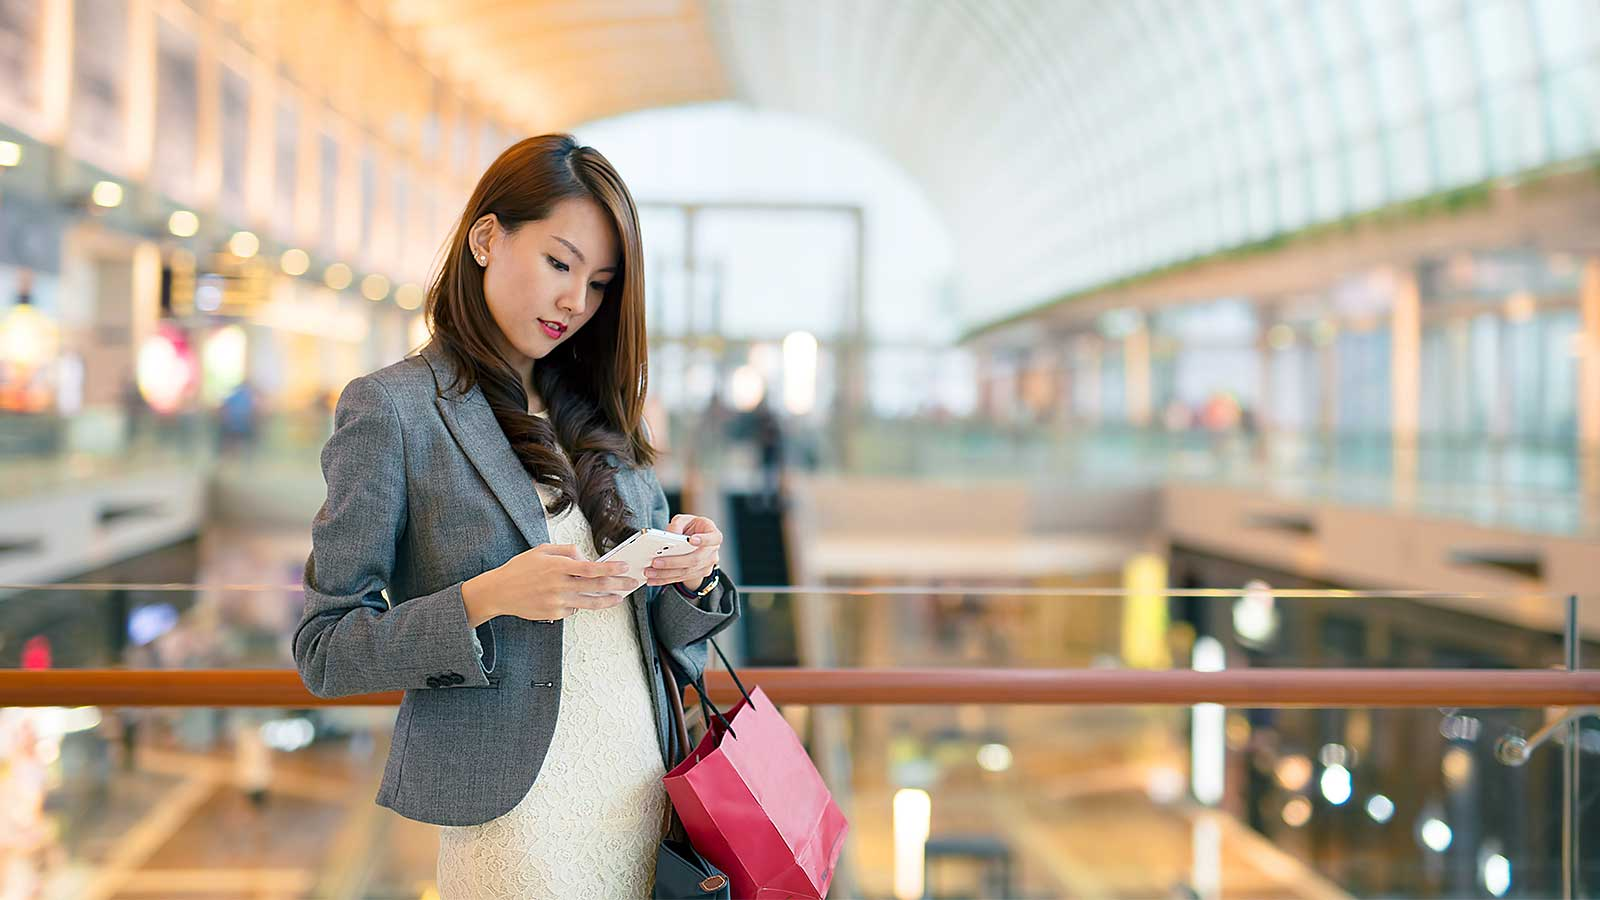 Woman with a shopping bag, looking at her mobile phone while inside a mall.